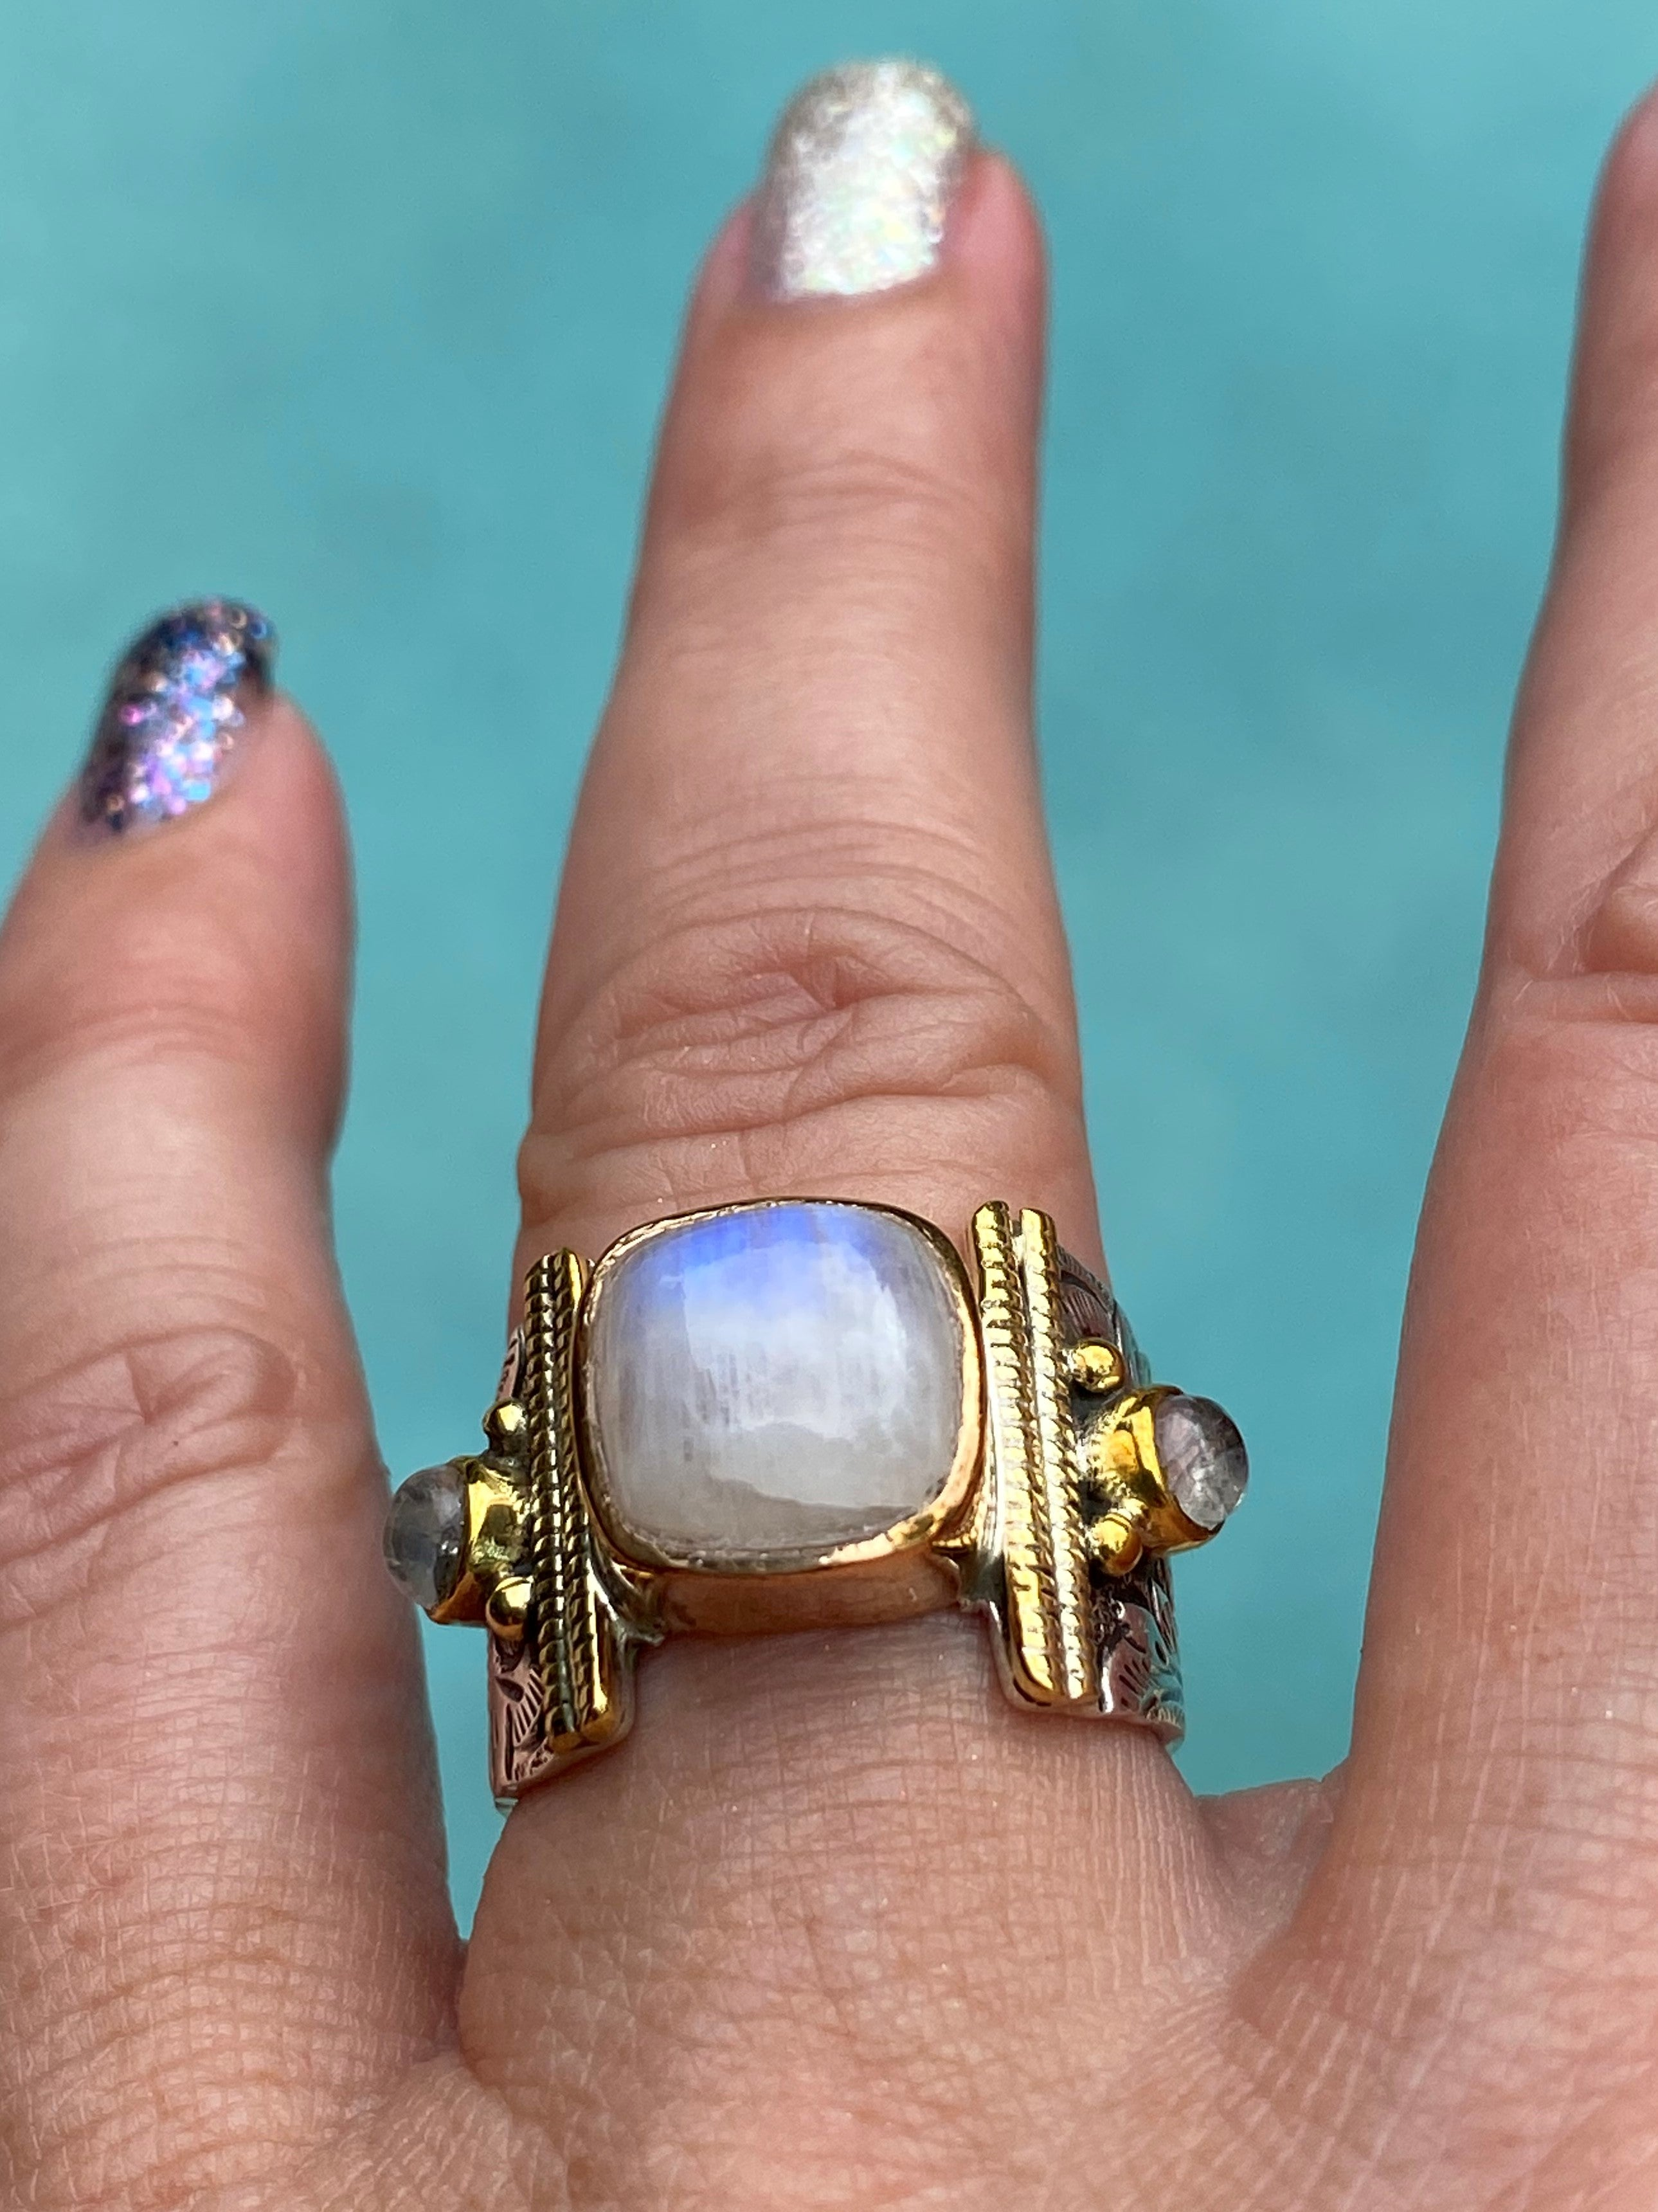 Regal Rainbow Moonstone - sterling silver 925 18k gold vermeil and brass etched wide band ring 9